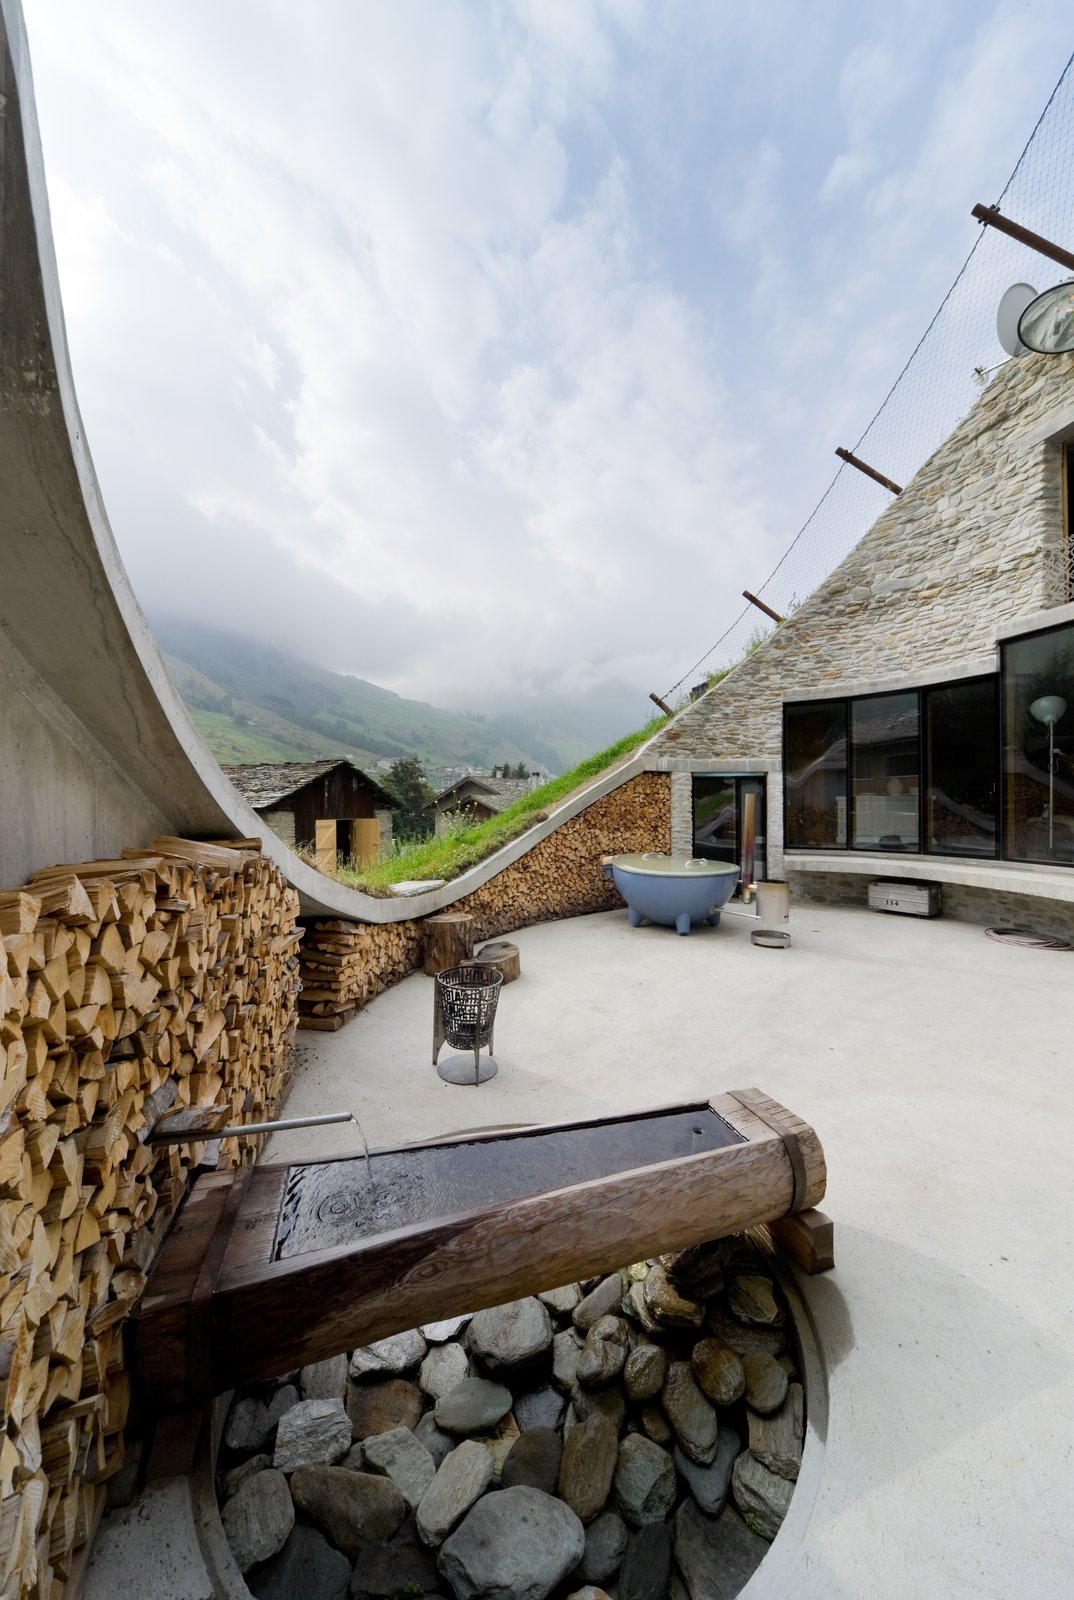 Outdoor, Concrete Patio, Porch, Deck, and Trees  Best Photos from Stay in a Swiss Vacation Home That's Literally Inside a Mountain